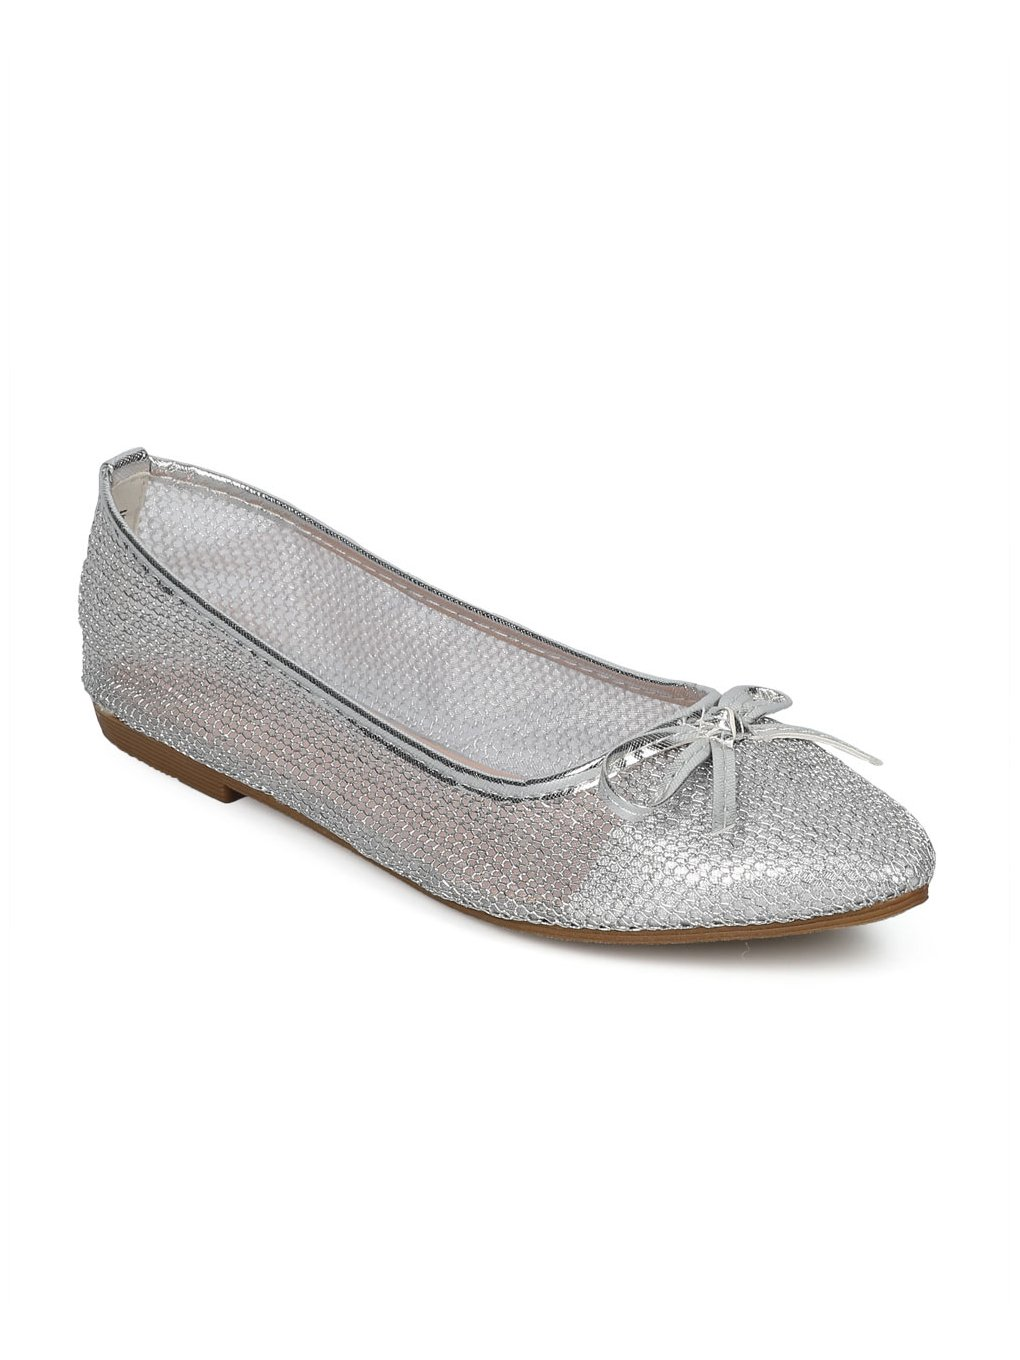 Indulge Dew-1-A Women Mesh Capped Toe Bow Tie Ballet Flat HE04 - Silver Mix Media (Size: 9.0)